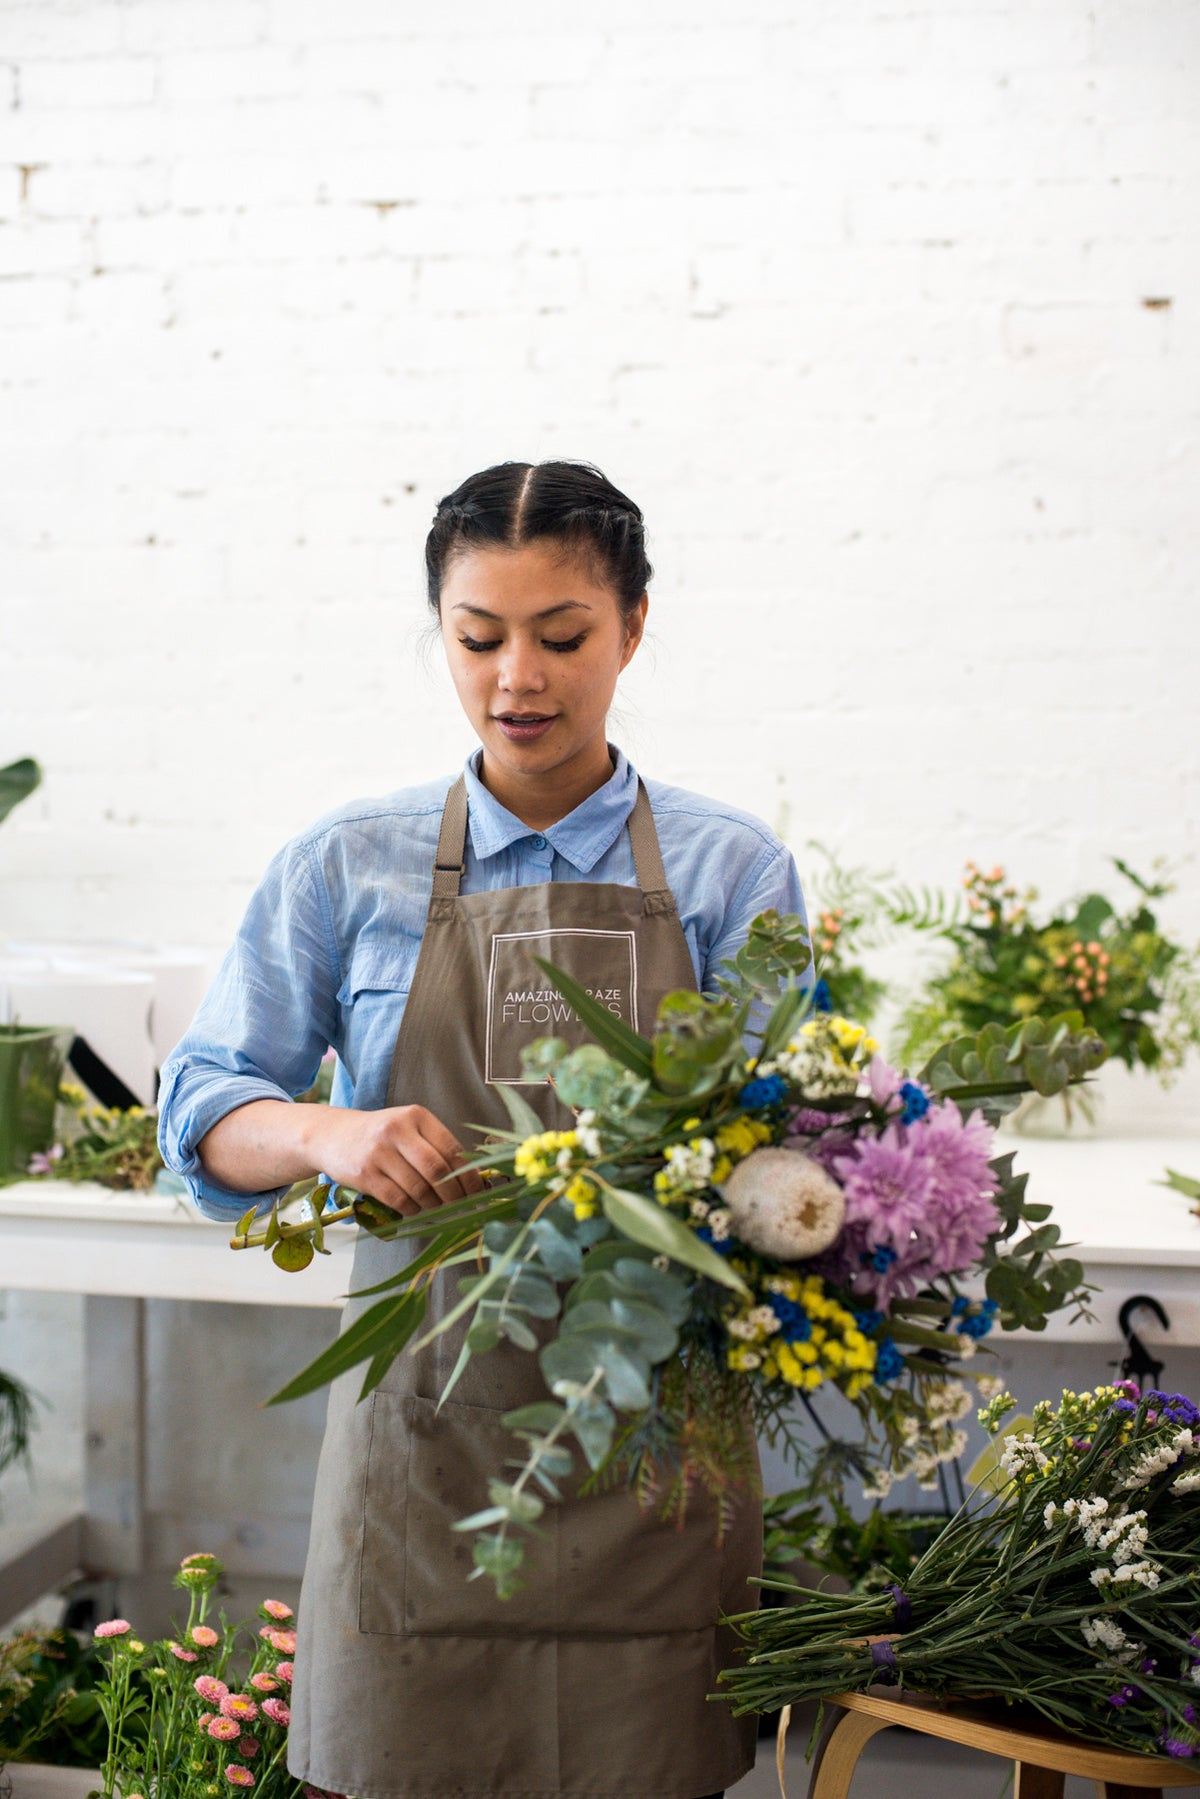 HOW TO CARE FOR FRESH CUT FLOWERS